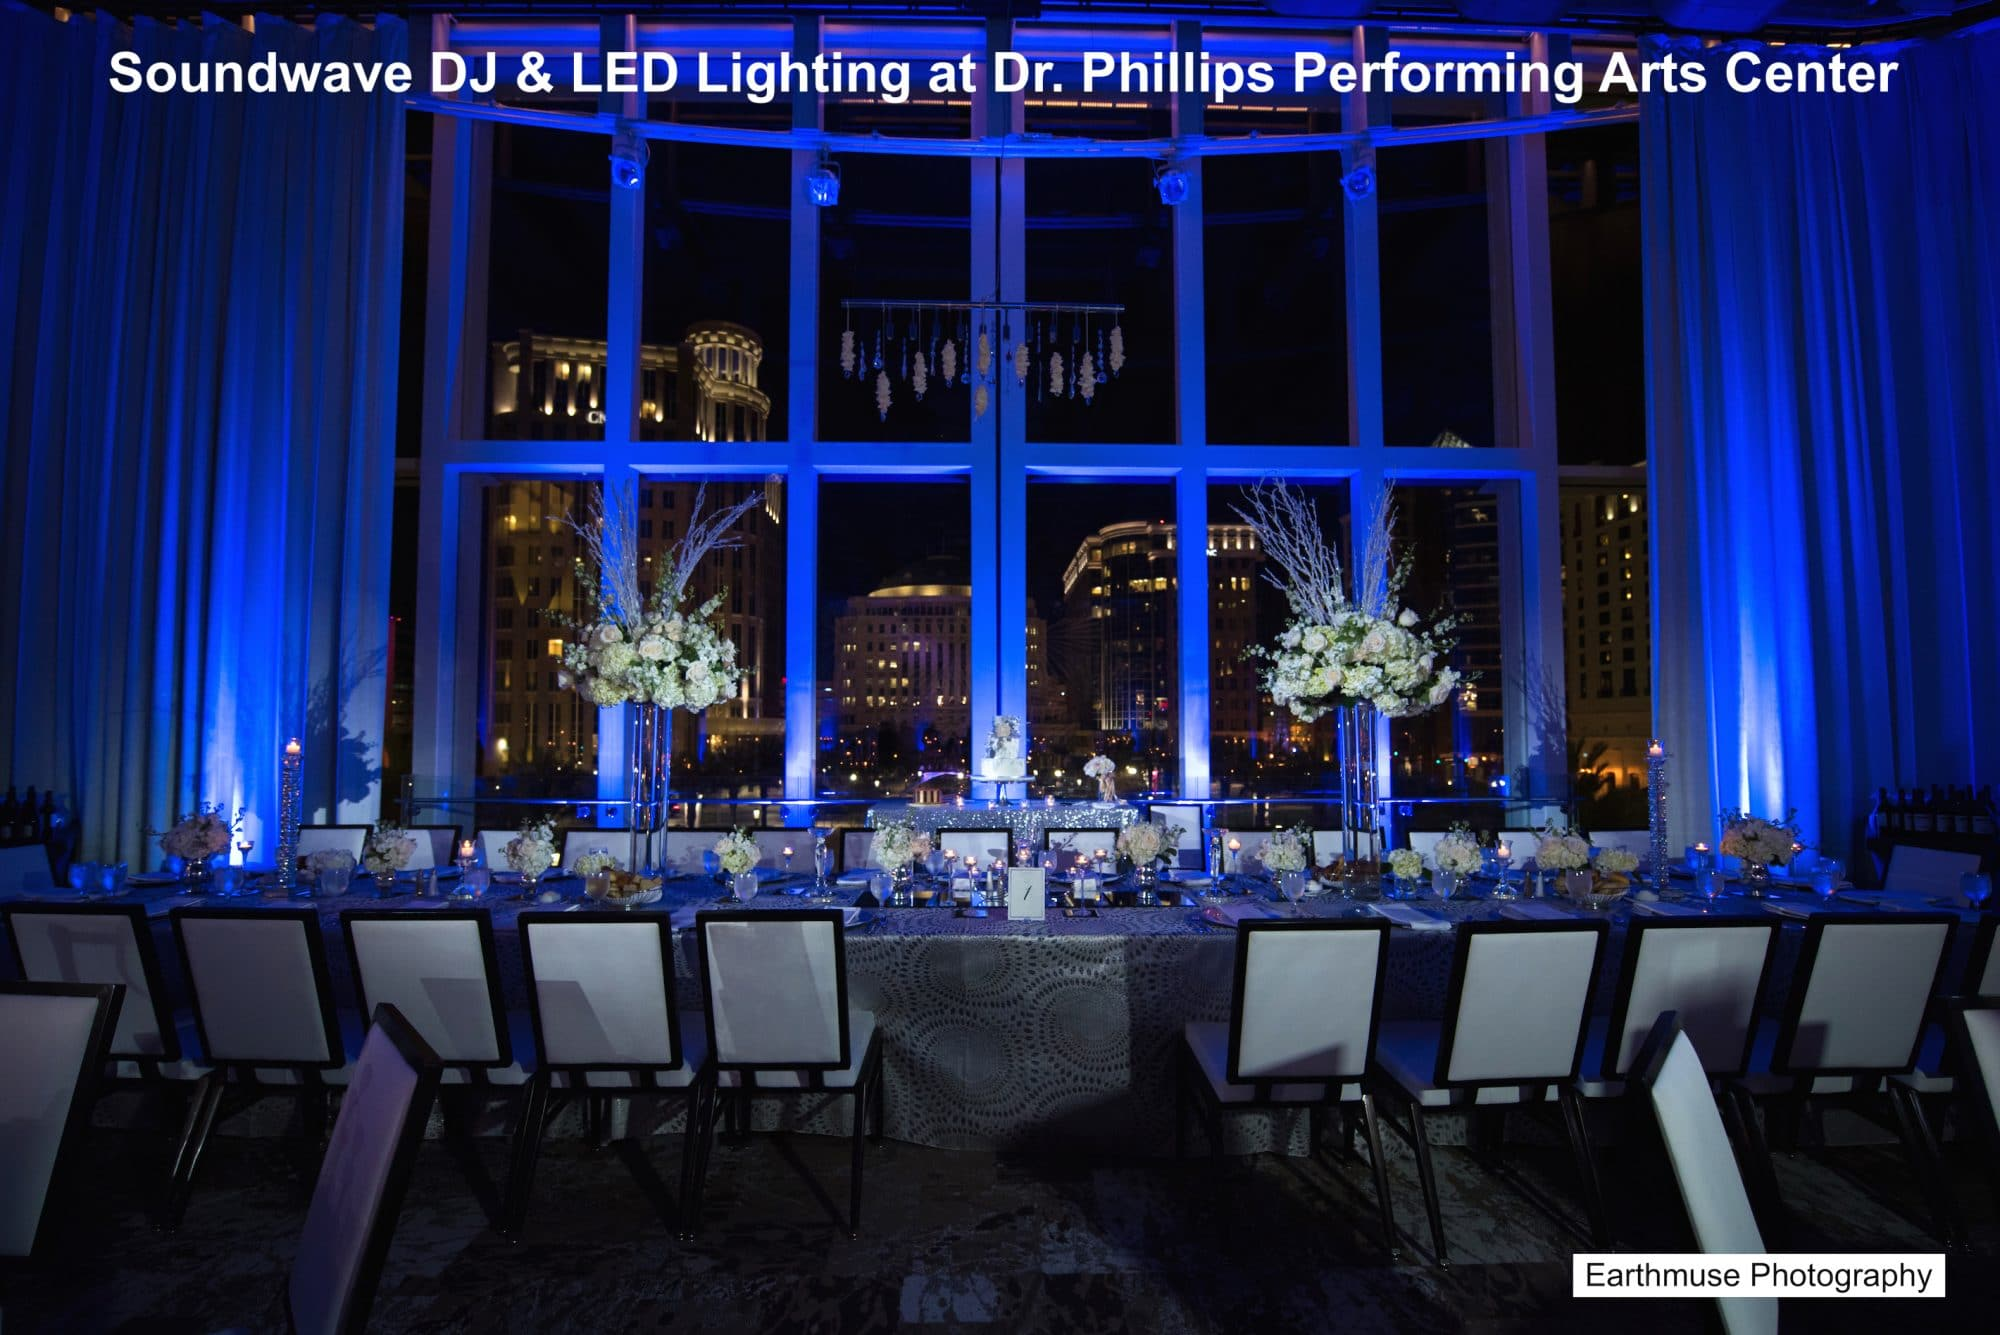 Cool blue uplighting at Dr. Phillips Performing Arts Center